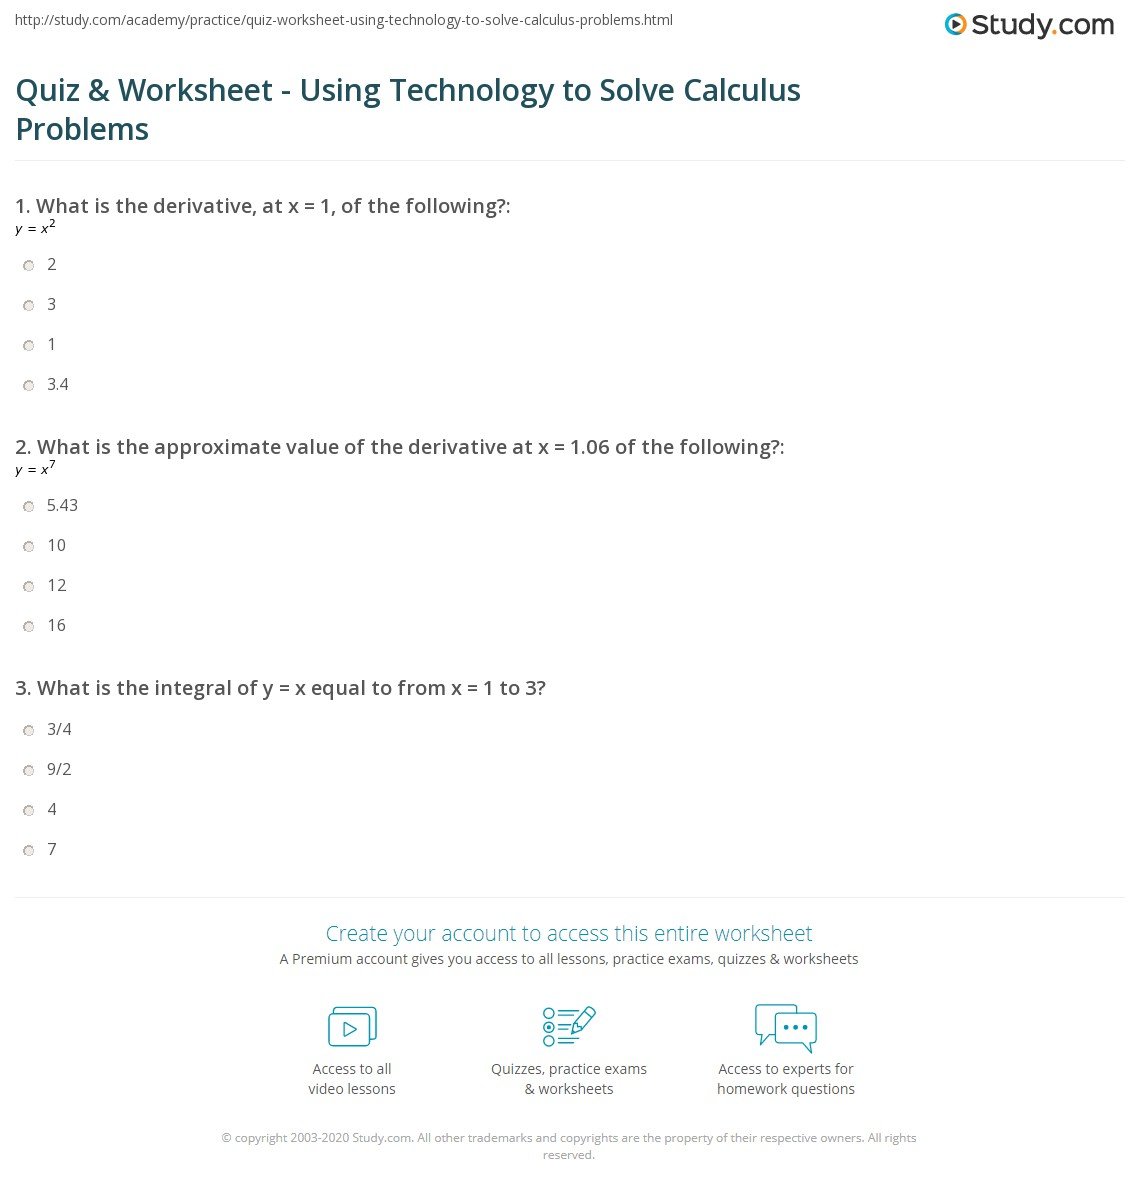 Quiz & Worksheet - Using Technology to Solve Calculus